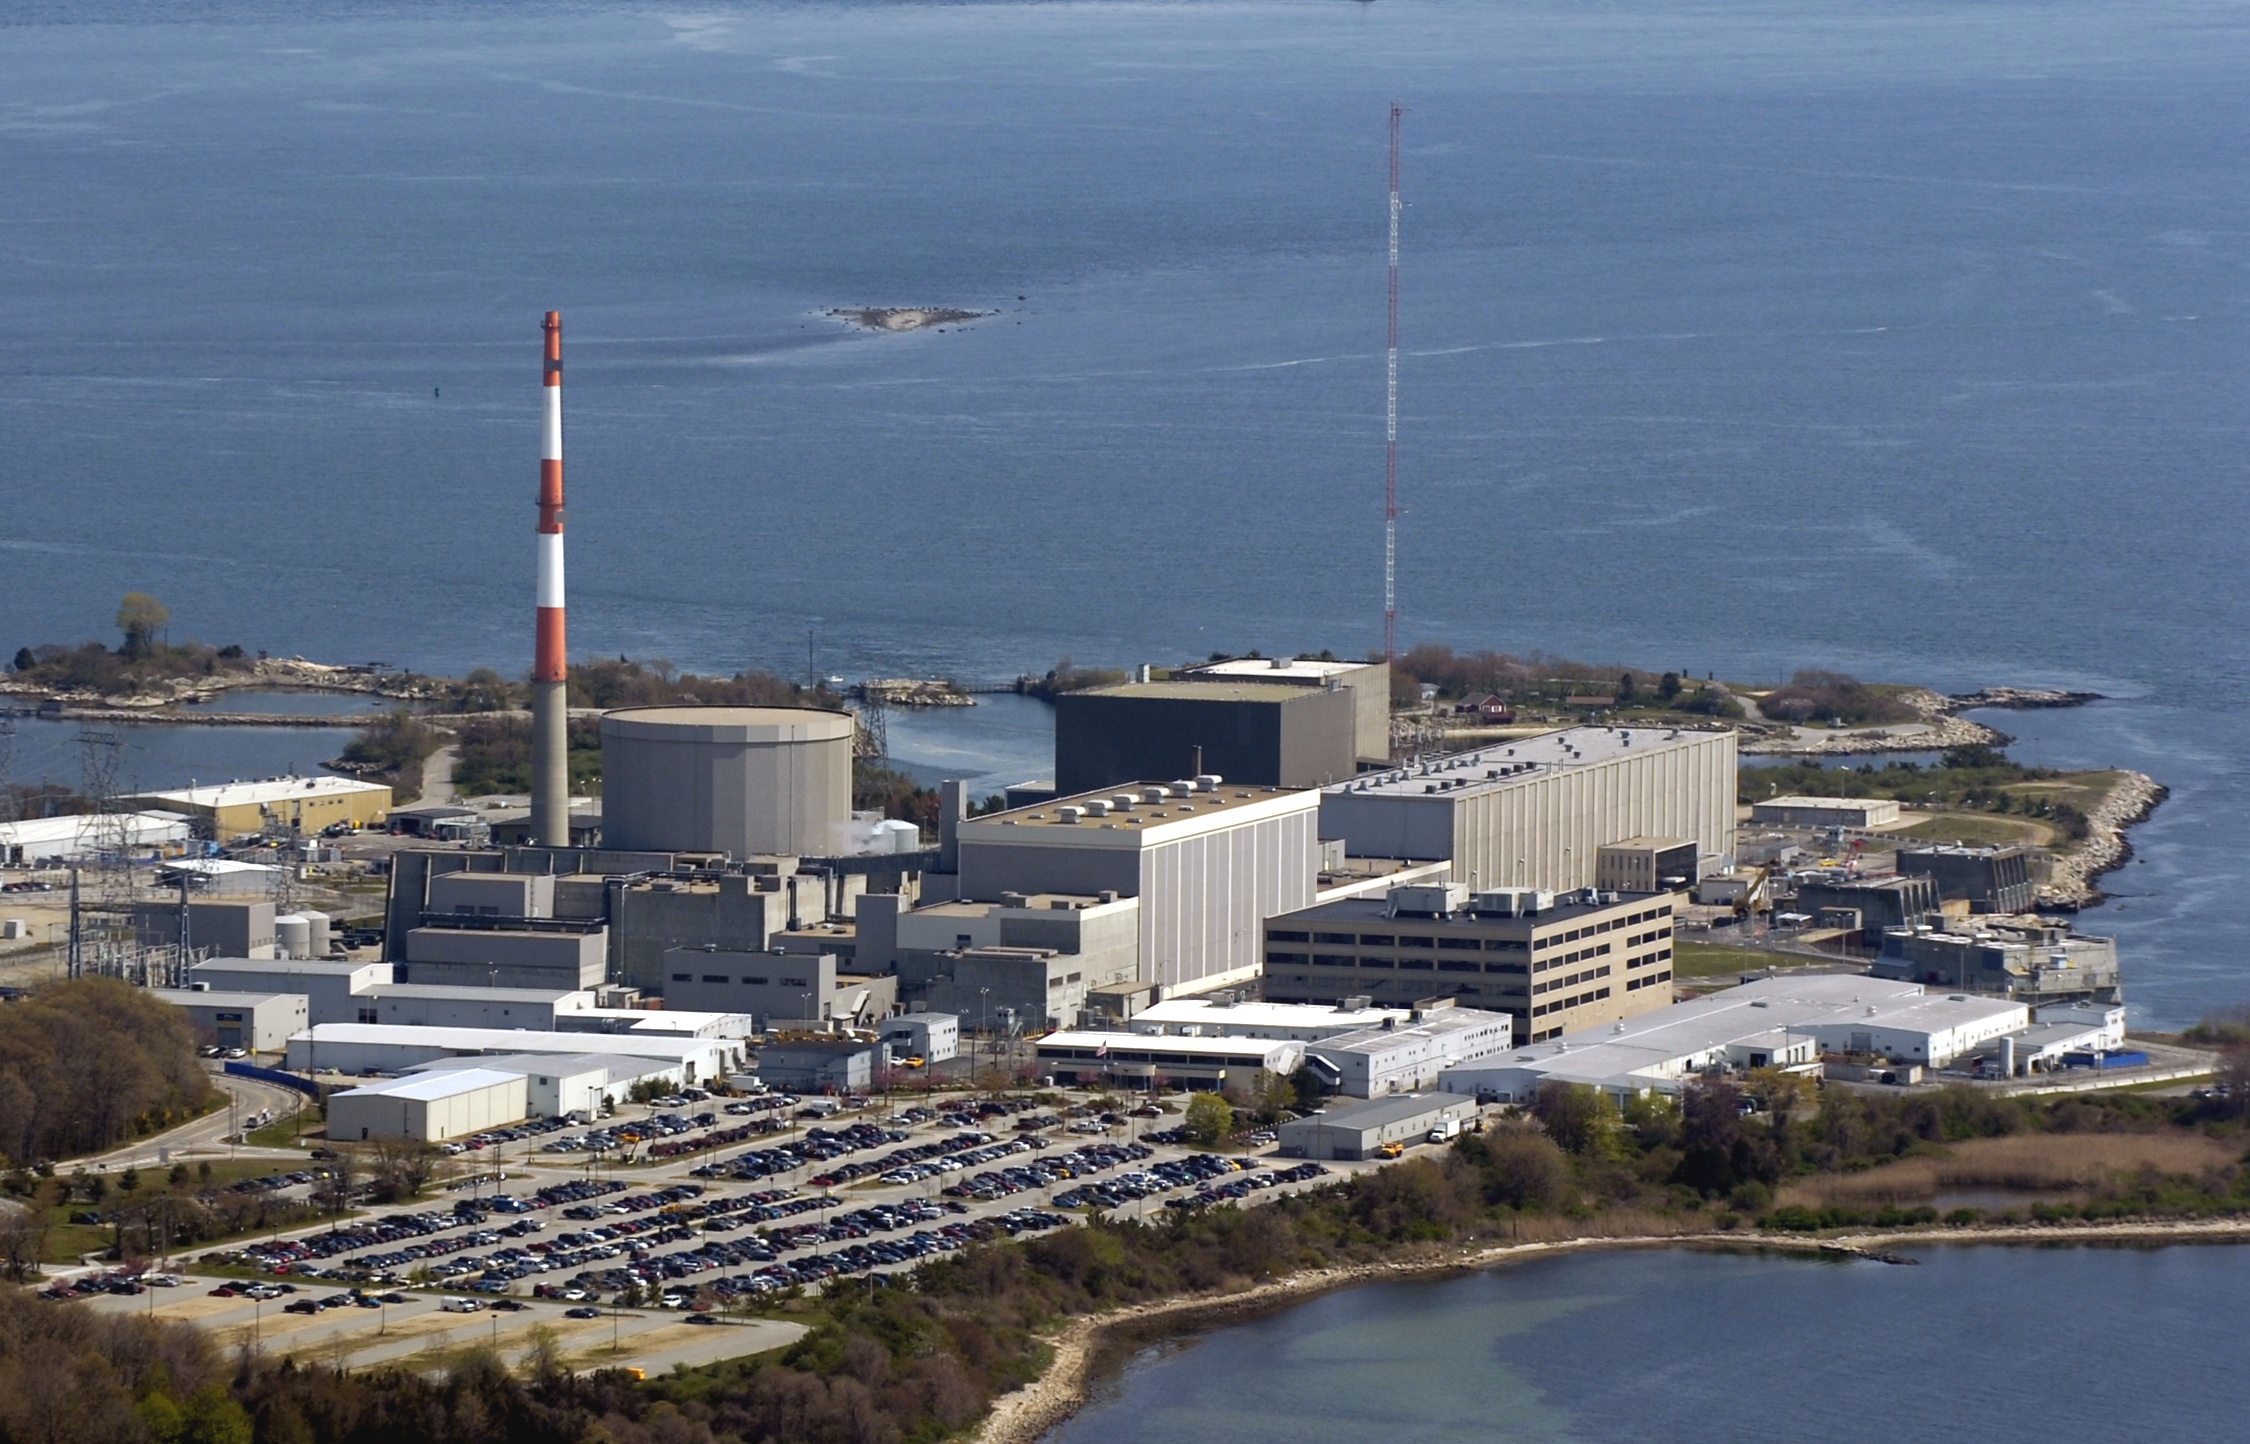 Nuclear wins big in clean energy competition – and not just Millstone